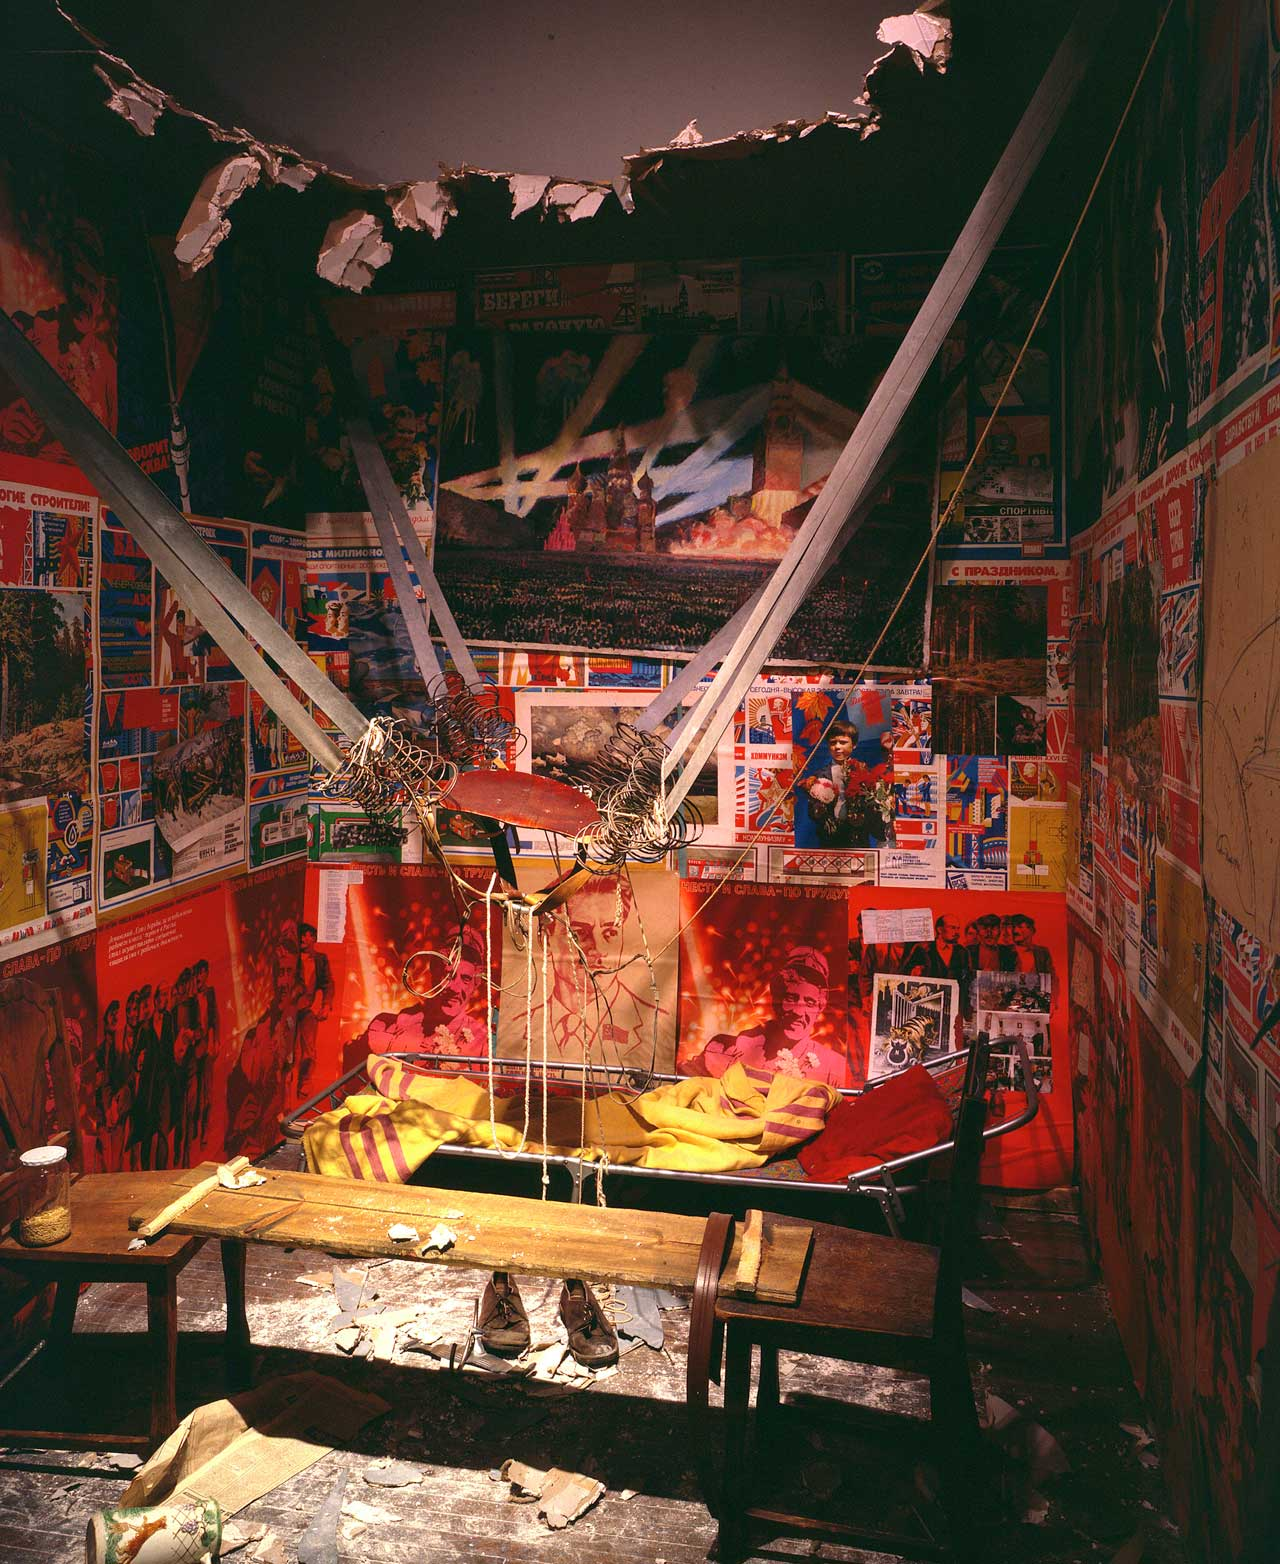 Ilya Kabakov, The Man Who Flew Into Space From His Apartment, 1985